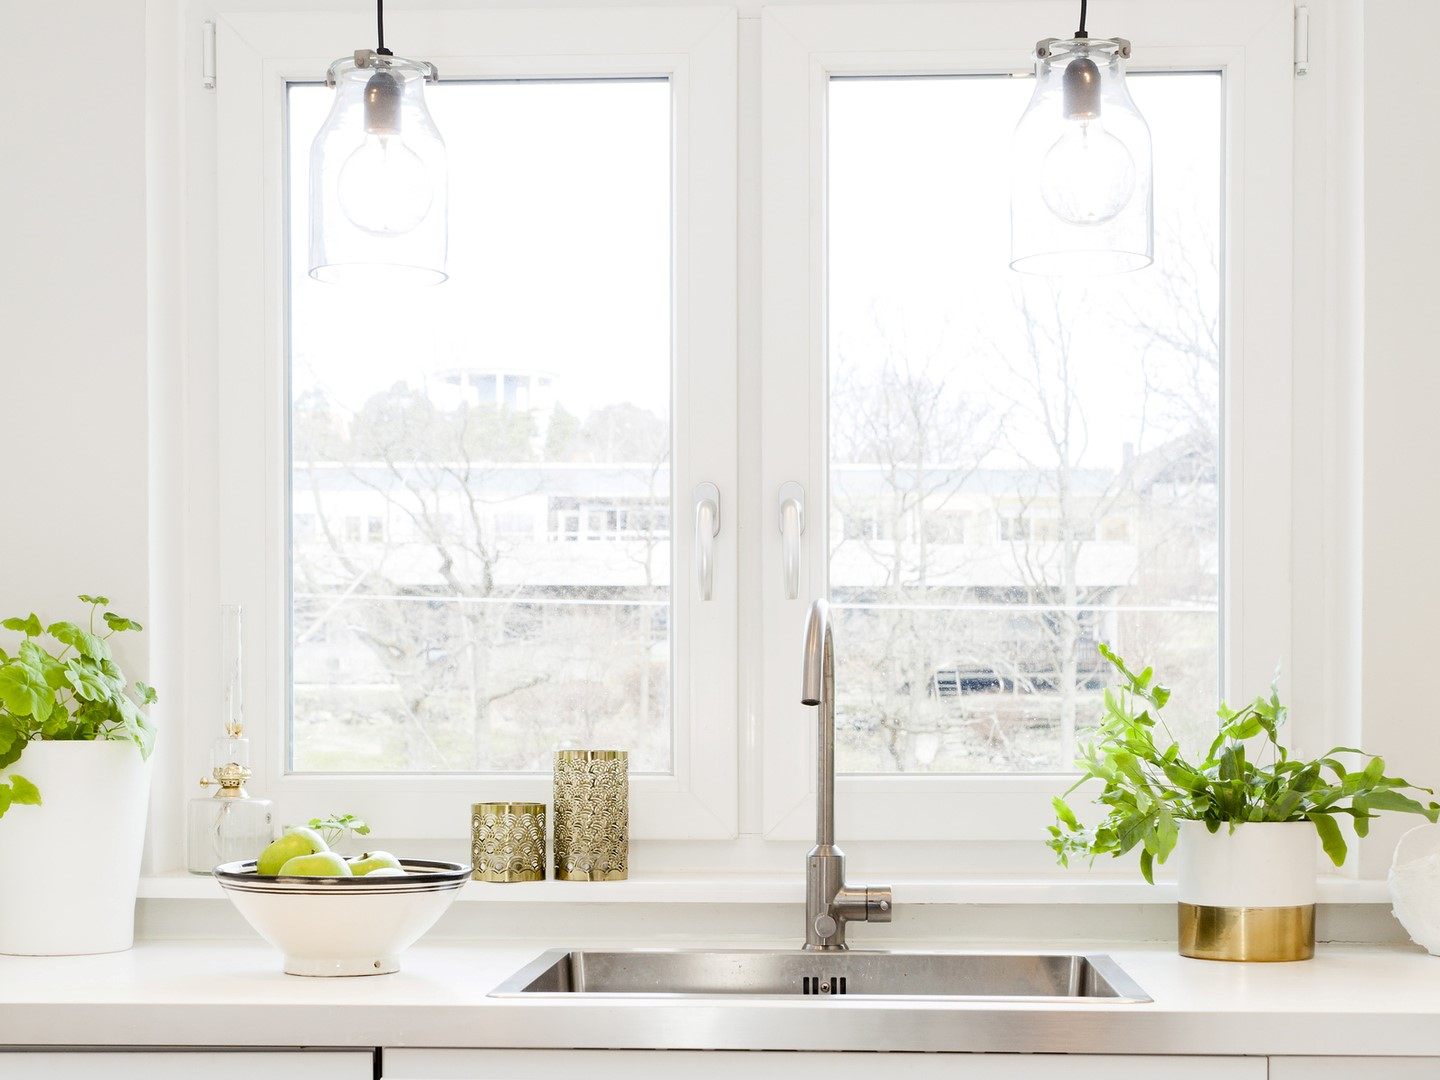 5 Easy Methods to Unclog Your Kitchen Sink Without Any Unpleasant Chemicals